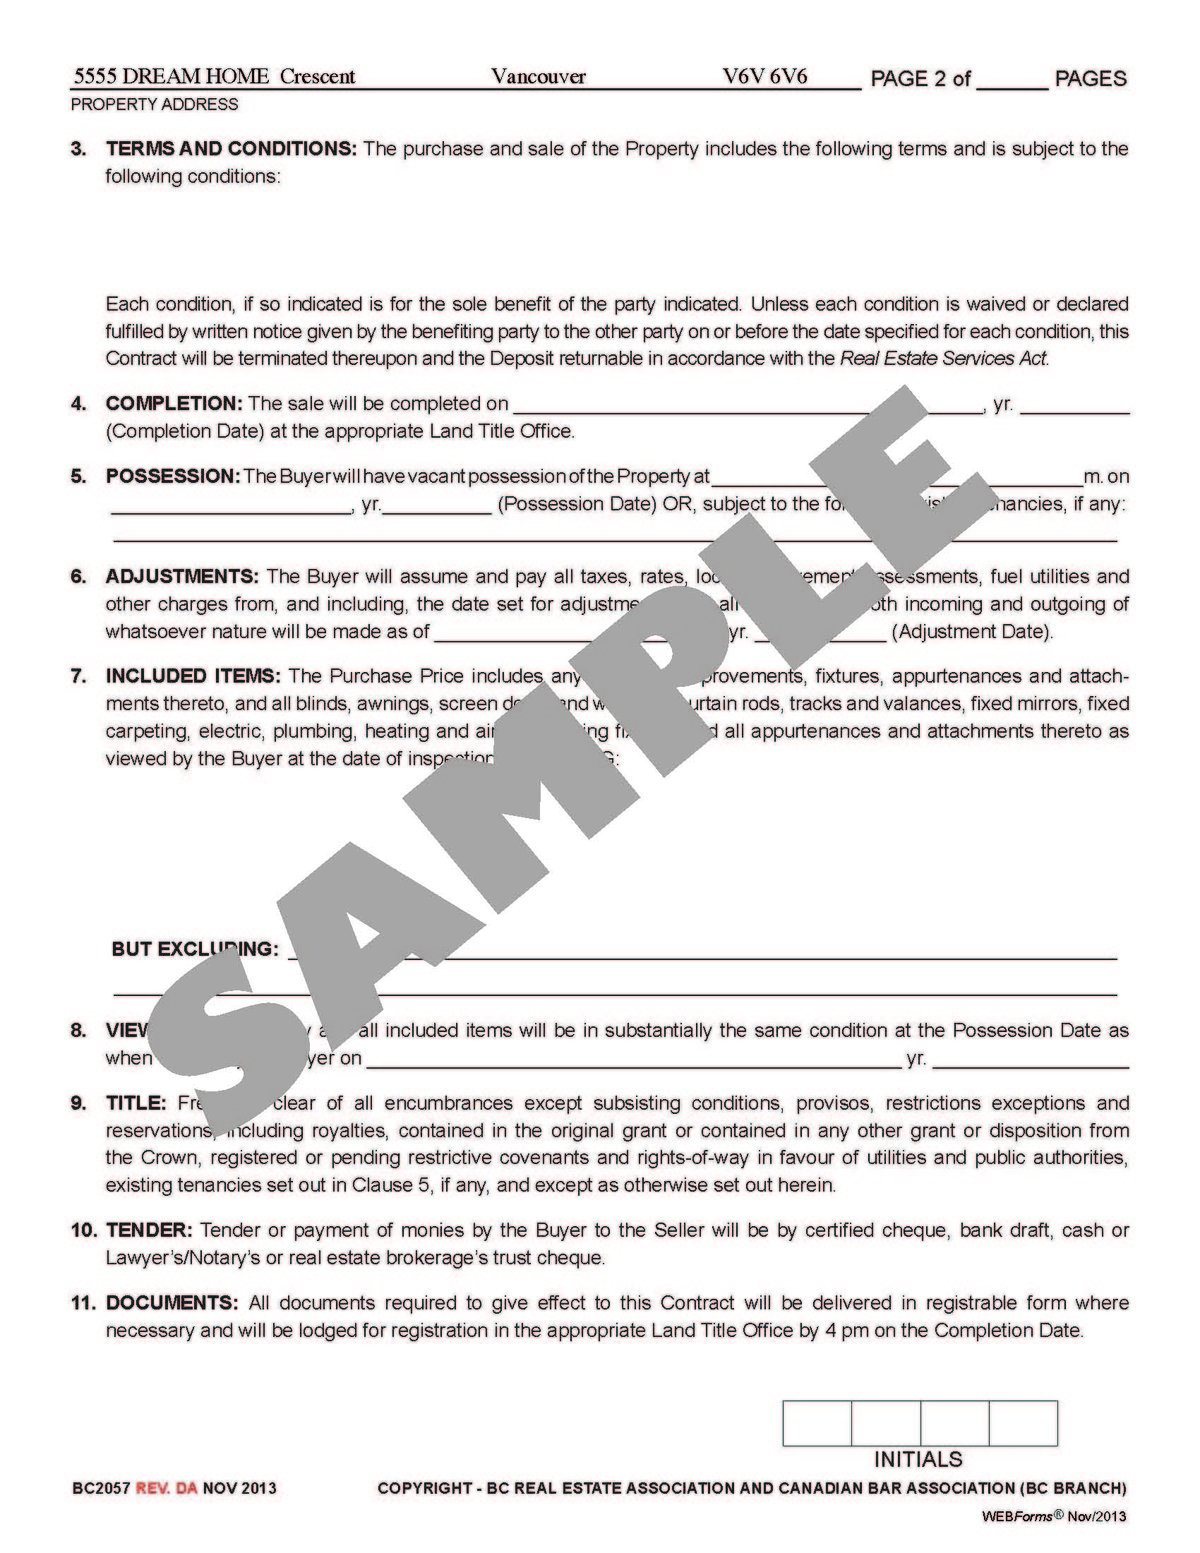 MLS-contract_of_purchase_and_sale SAMPLE_Page_3.jpg